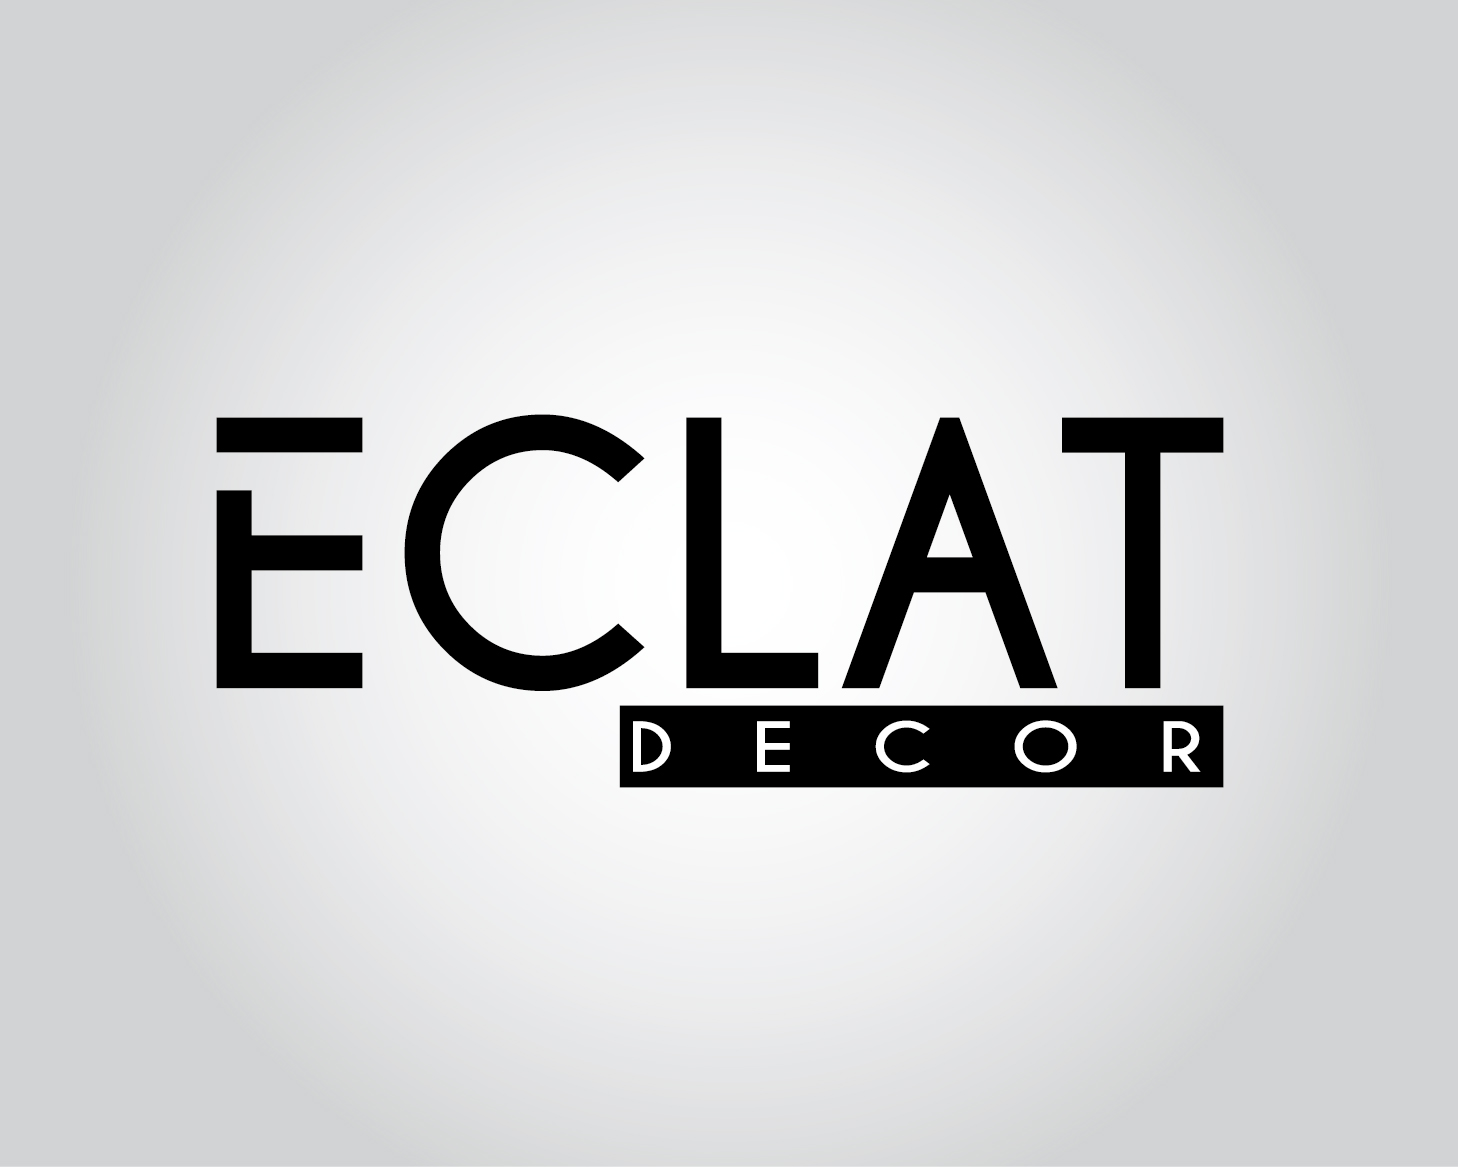 Logo Design by VENTSISLAV KOVACHEV - Entry No. 2 in the Logo Design Contest Imaginative Logo Design for Éclat Decor.